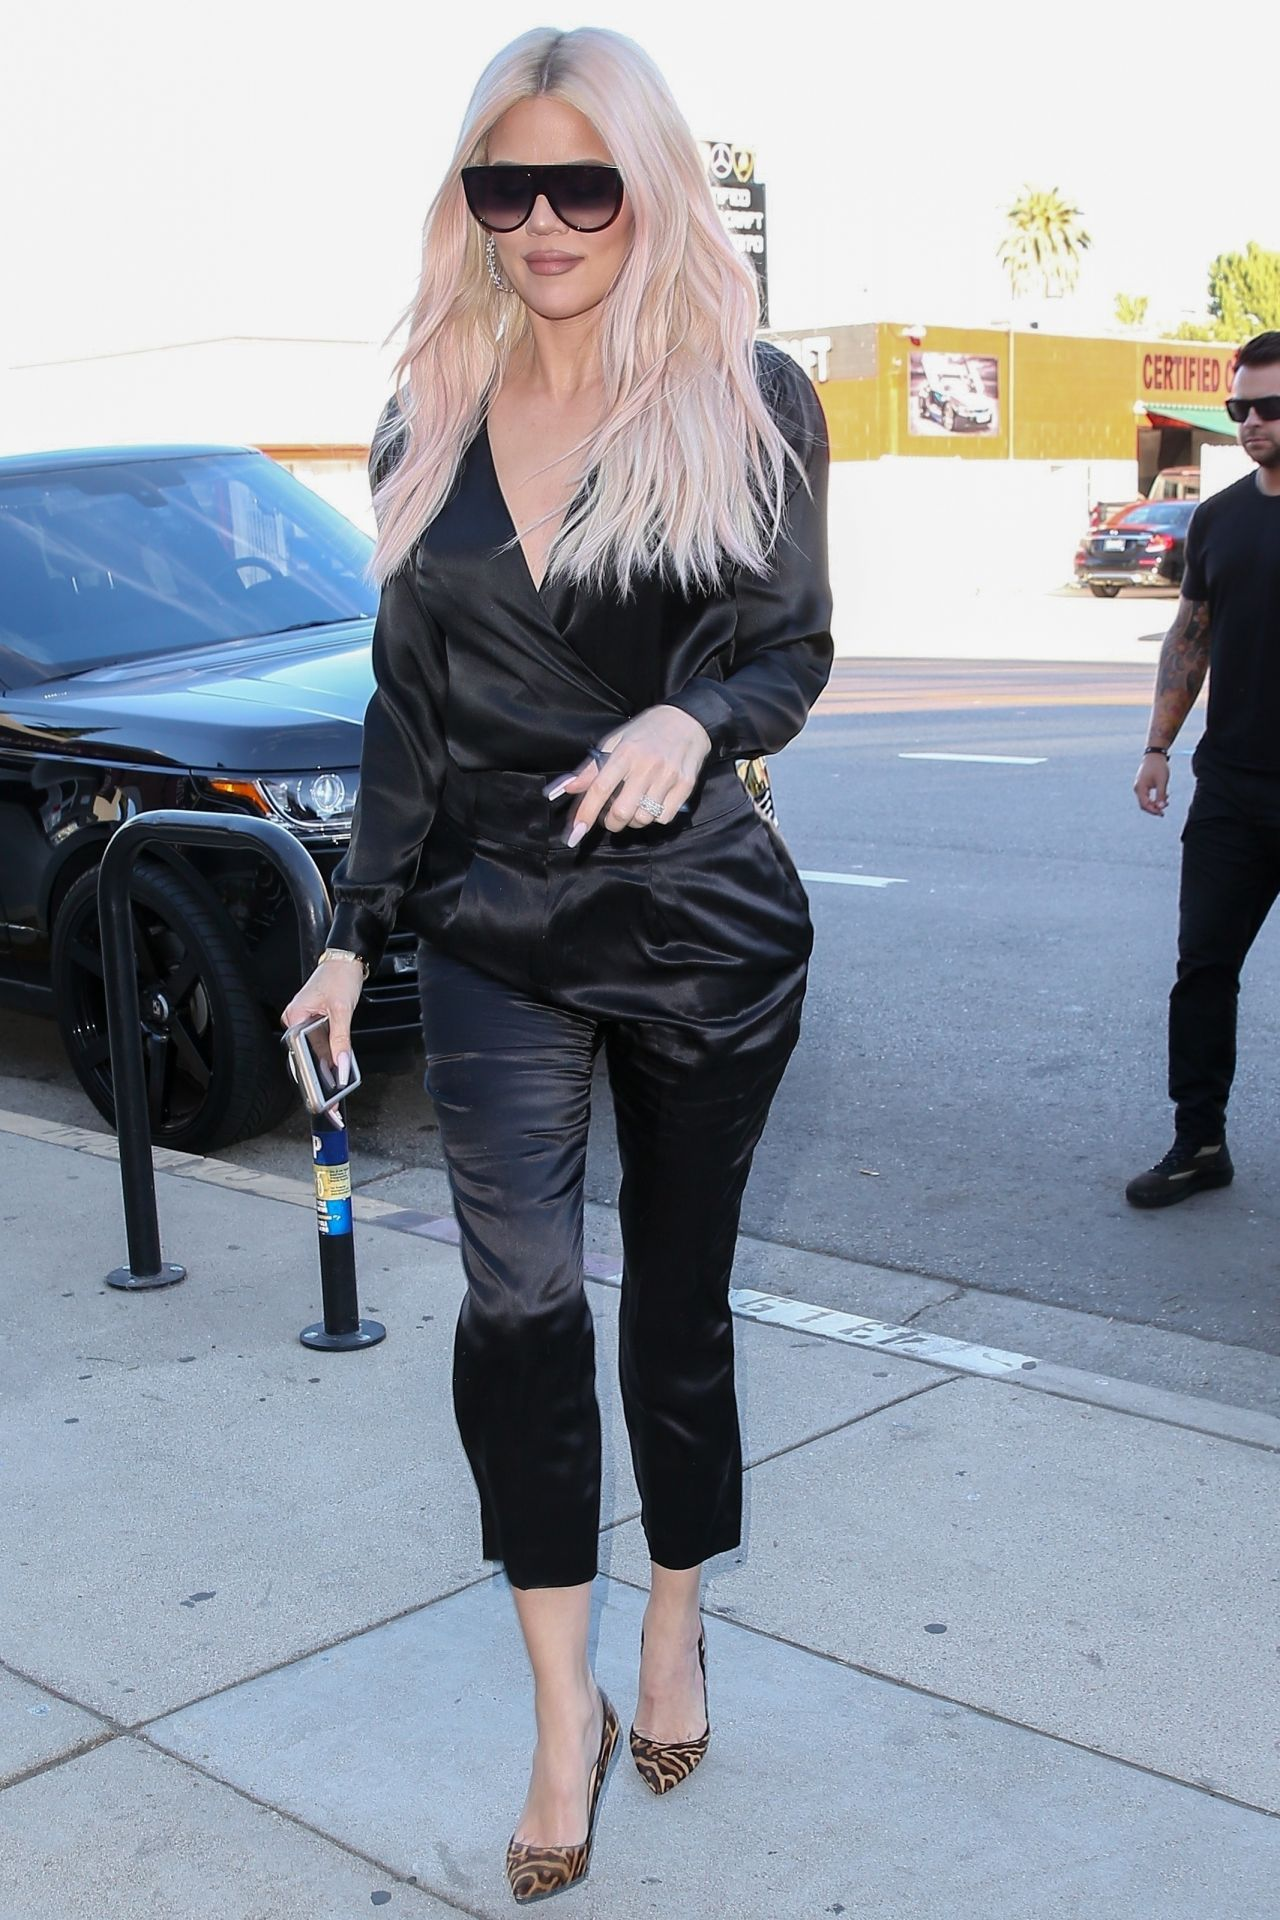 9c8d8daab1753 Khloe Kardashian Style and Fashion - Los Angeles 12/19/2018